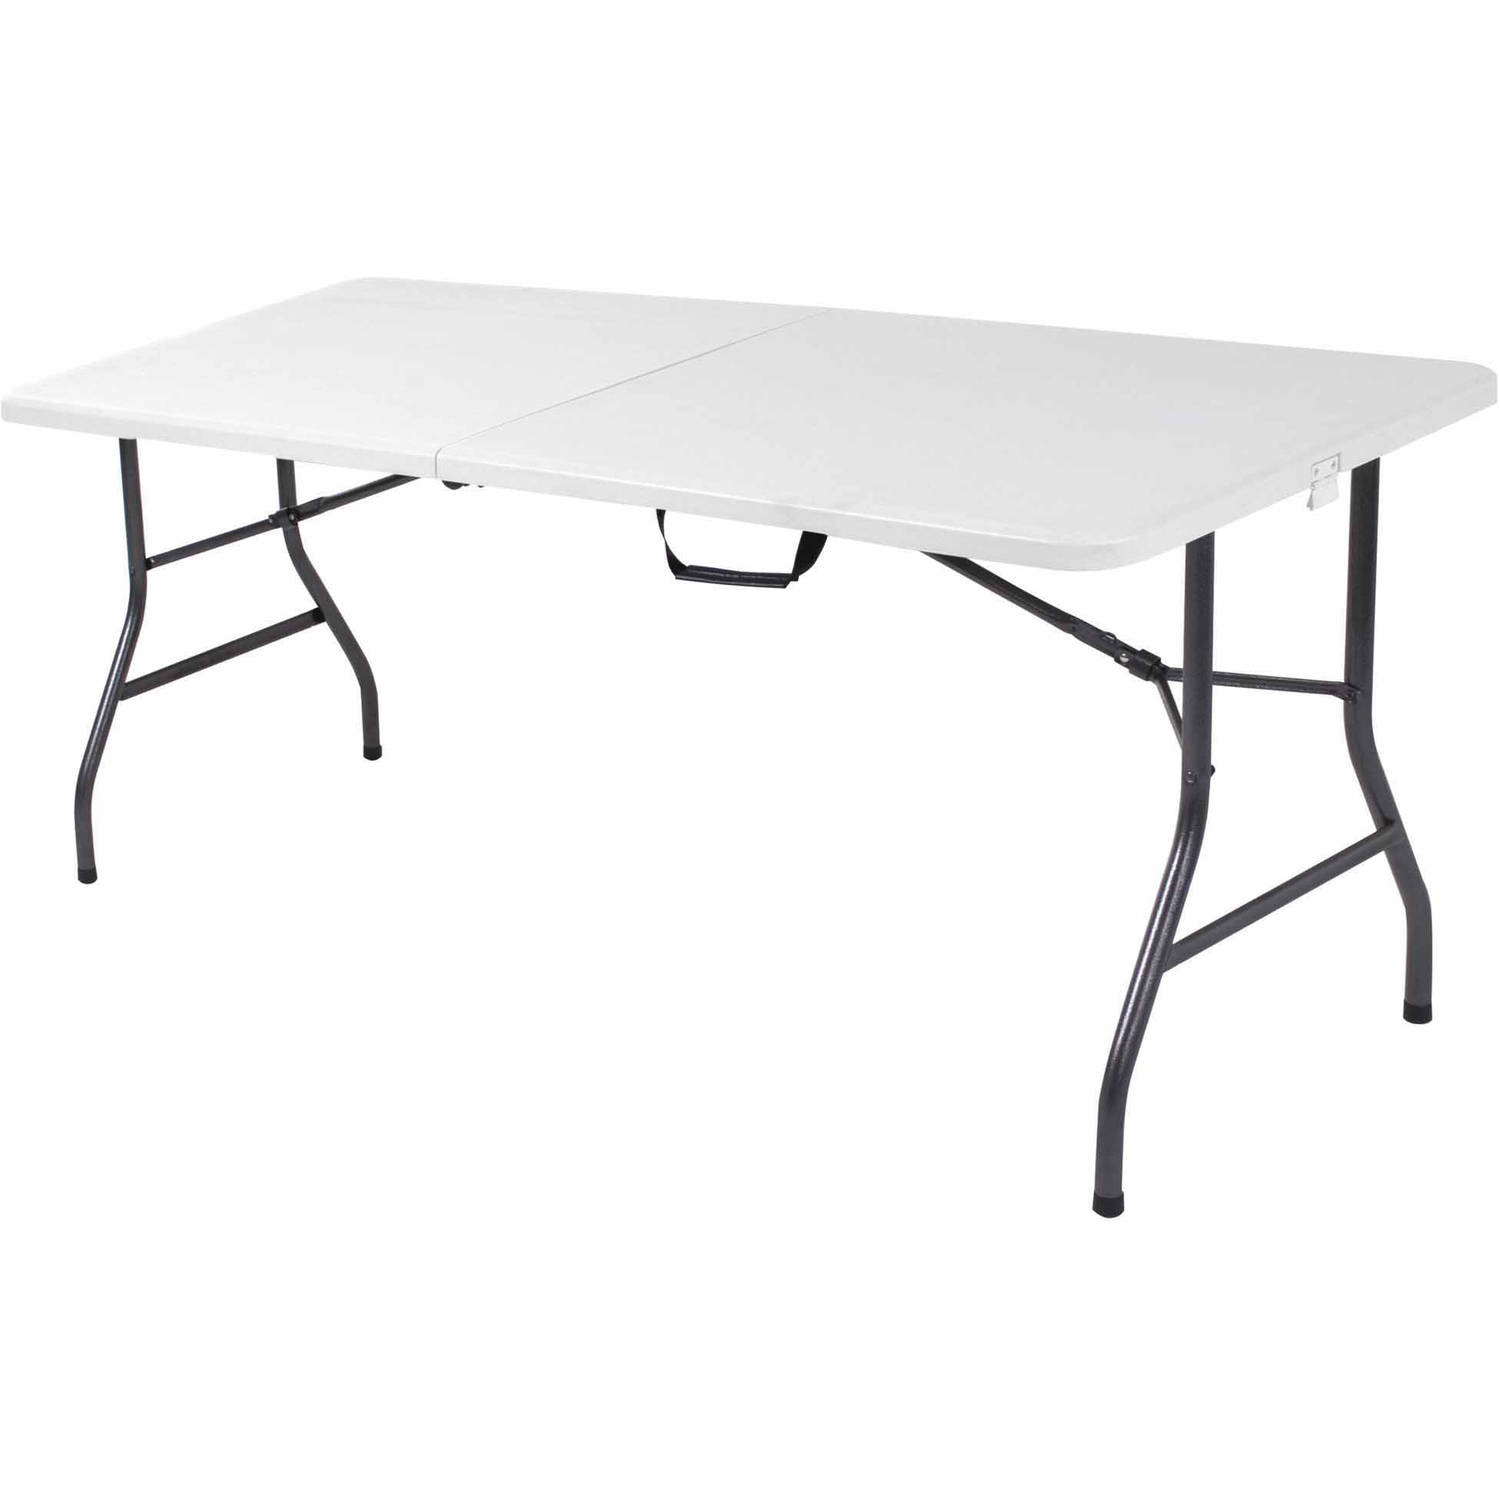 Stylish white folding table and chairs folding tables xddyrkh